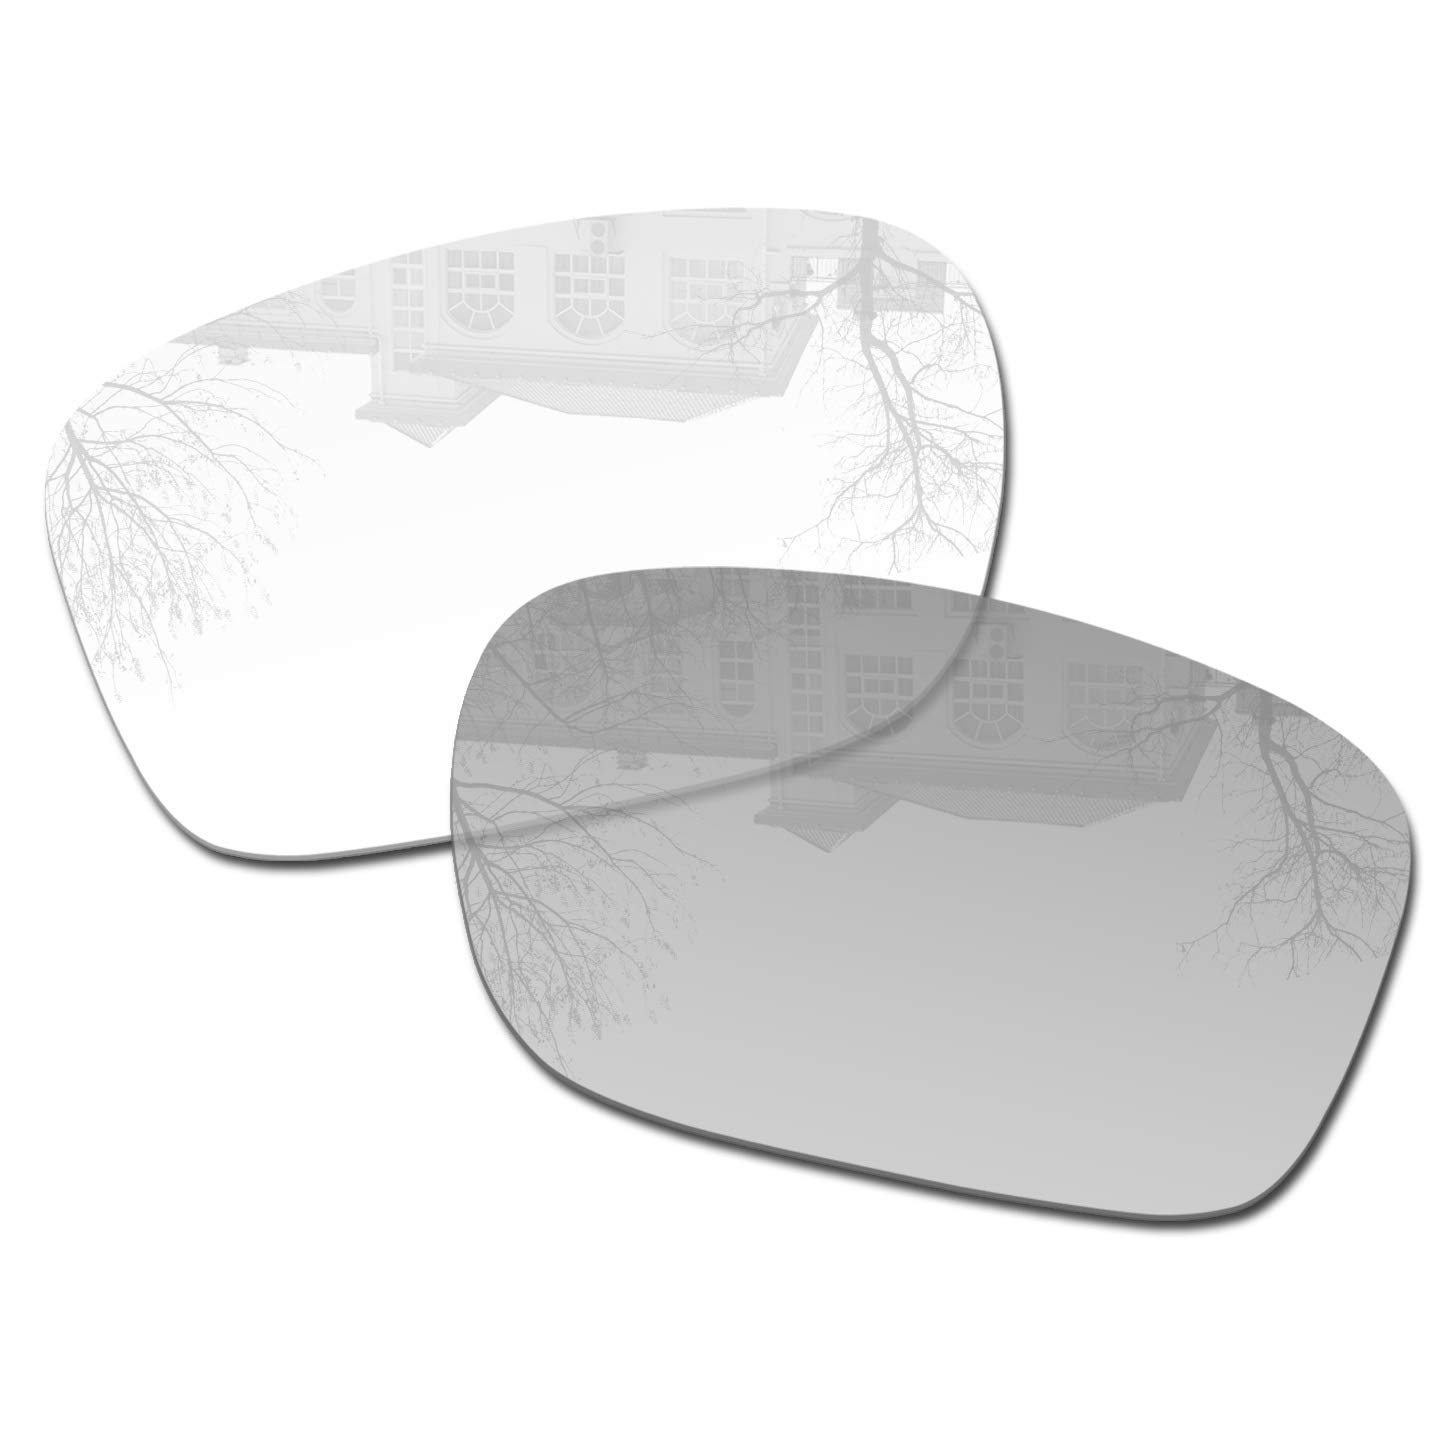 Millersawp Holbrook OO9102 Replacement Lenses Compatiable with Oakley Sunglass-Clear/Grey Photochromic by Millersawp